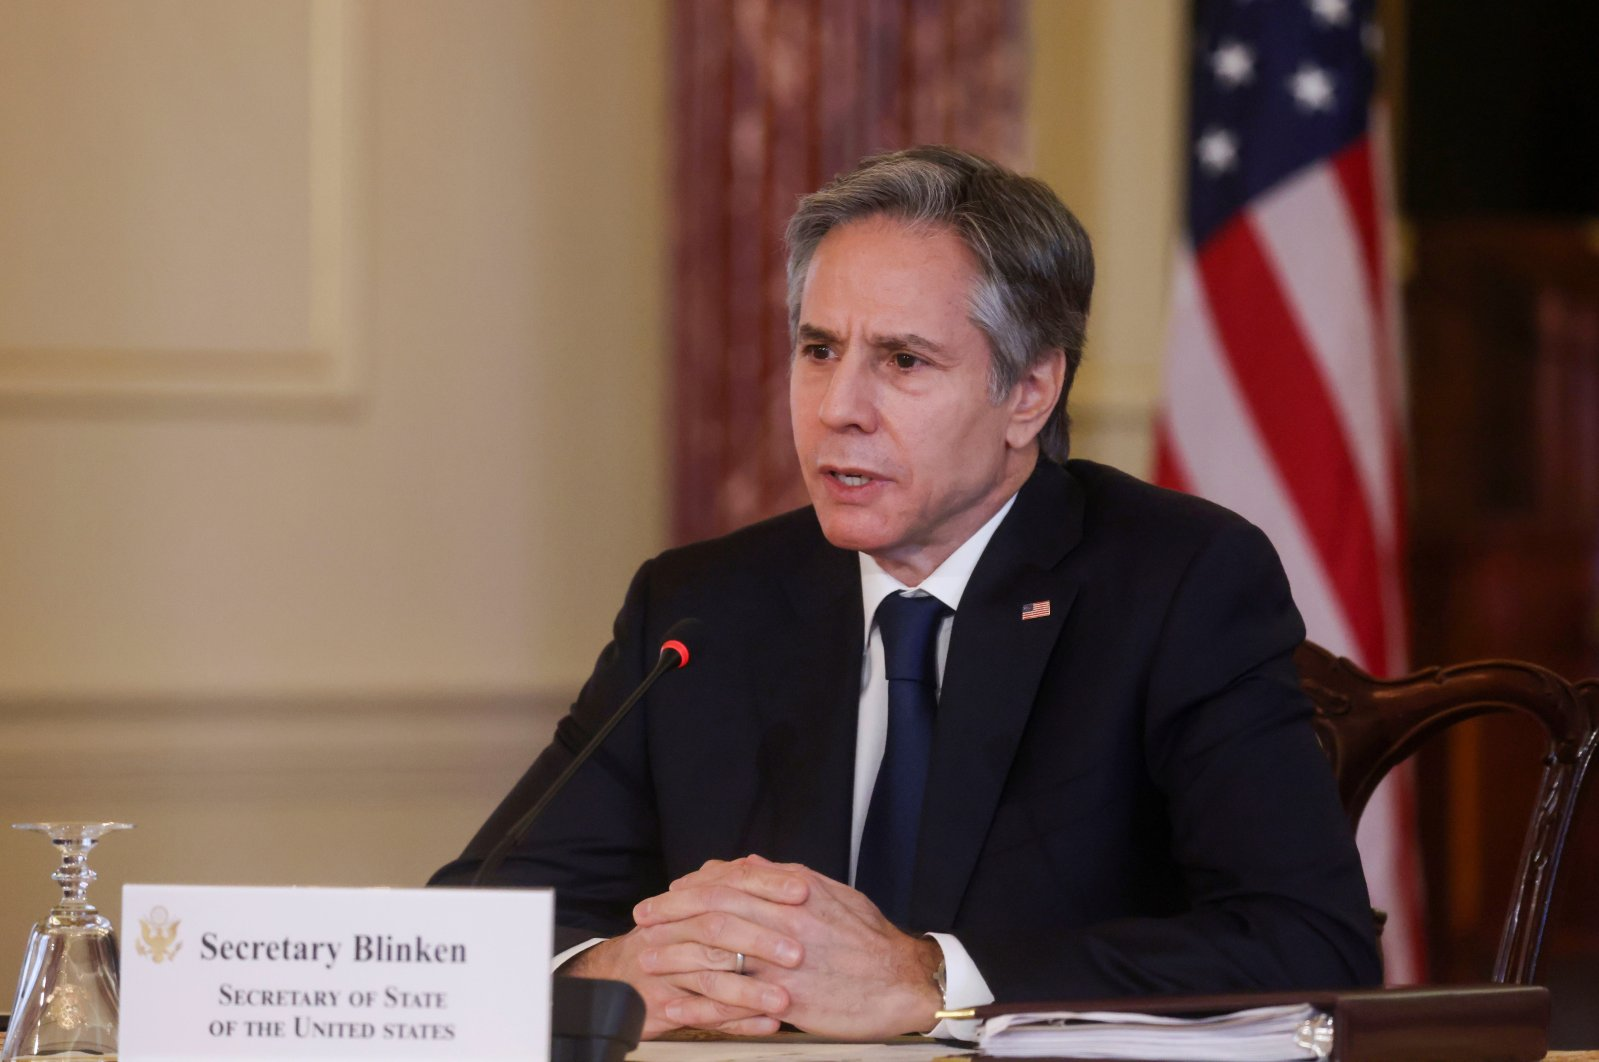 U.S. Secretary of State Antony Blinken participates in a virtual bilateral meeting with Kenya's President Uhuru Kenyatta during a videoconference at the State Department in Washington, D.C., the U.S., April 27, 2021. (Reuters Photo)